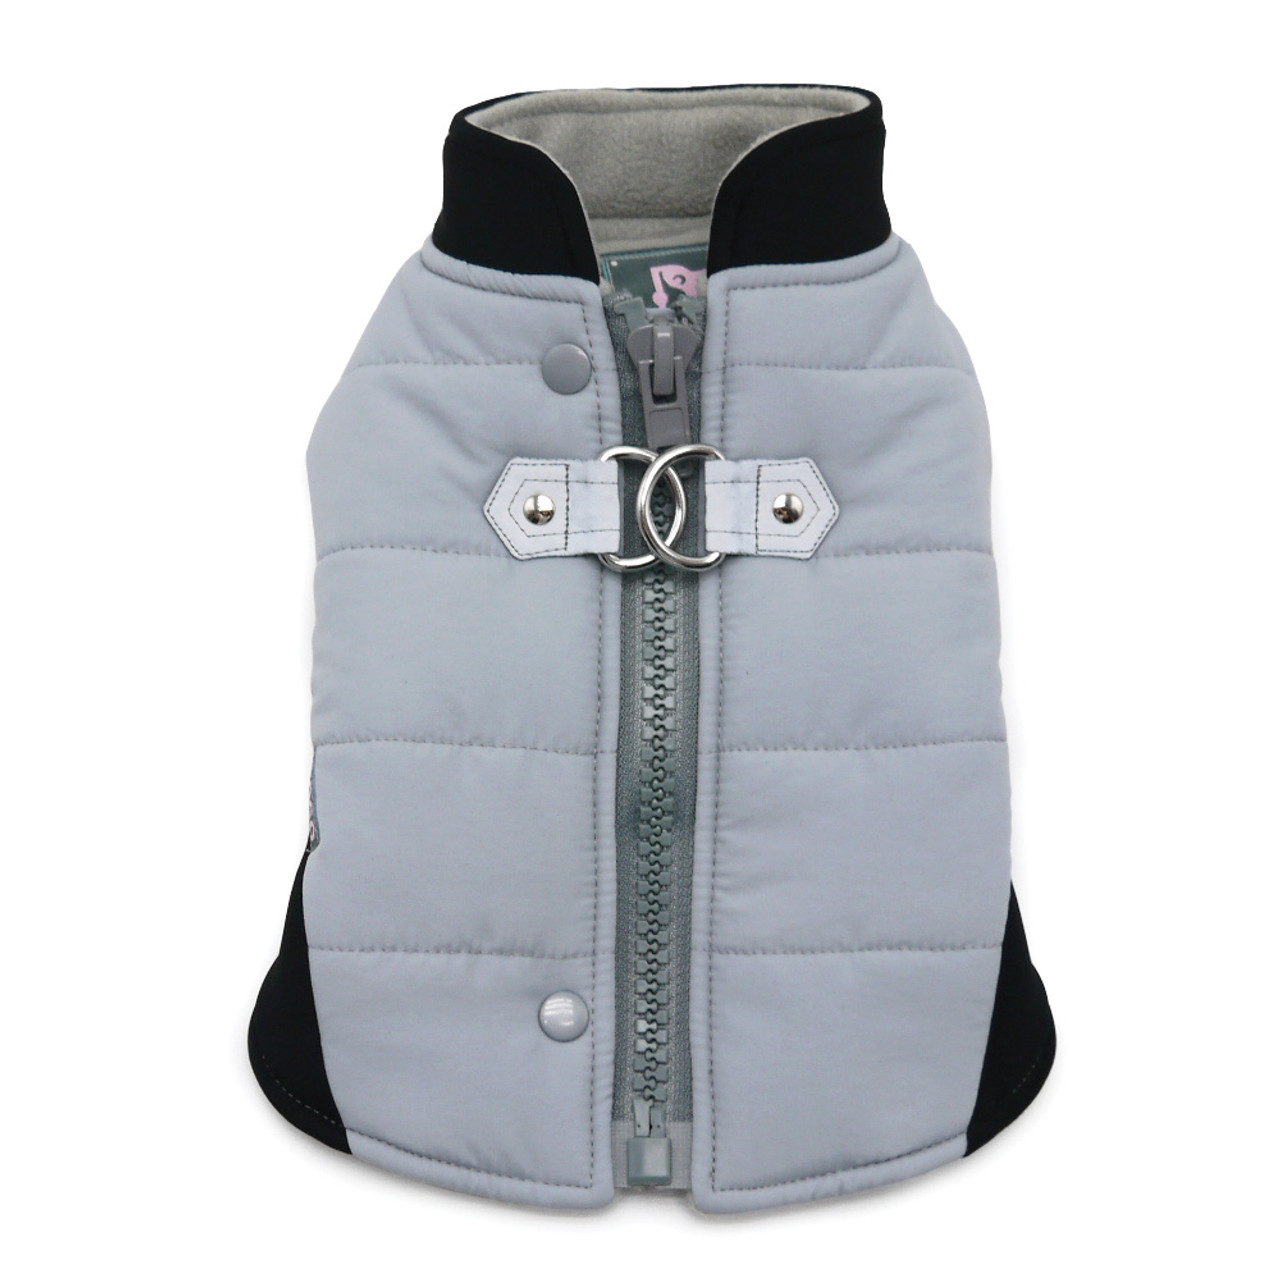 Gray Urban Runner Coat with Built In Harness